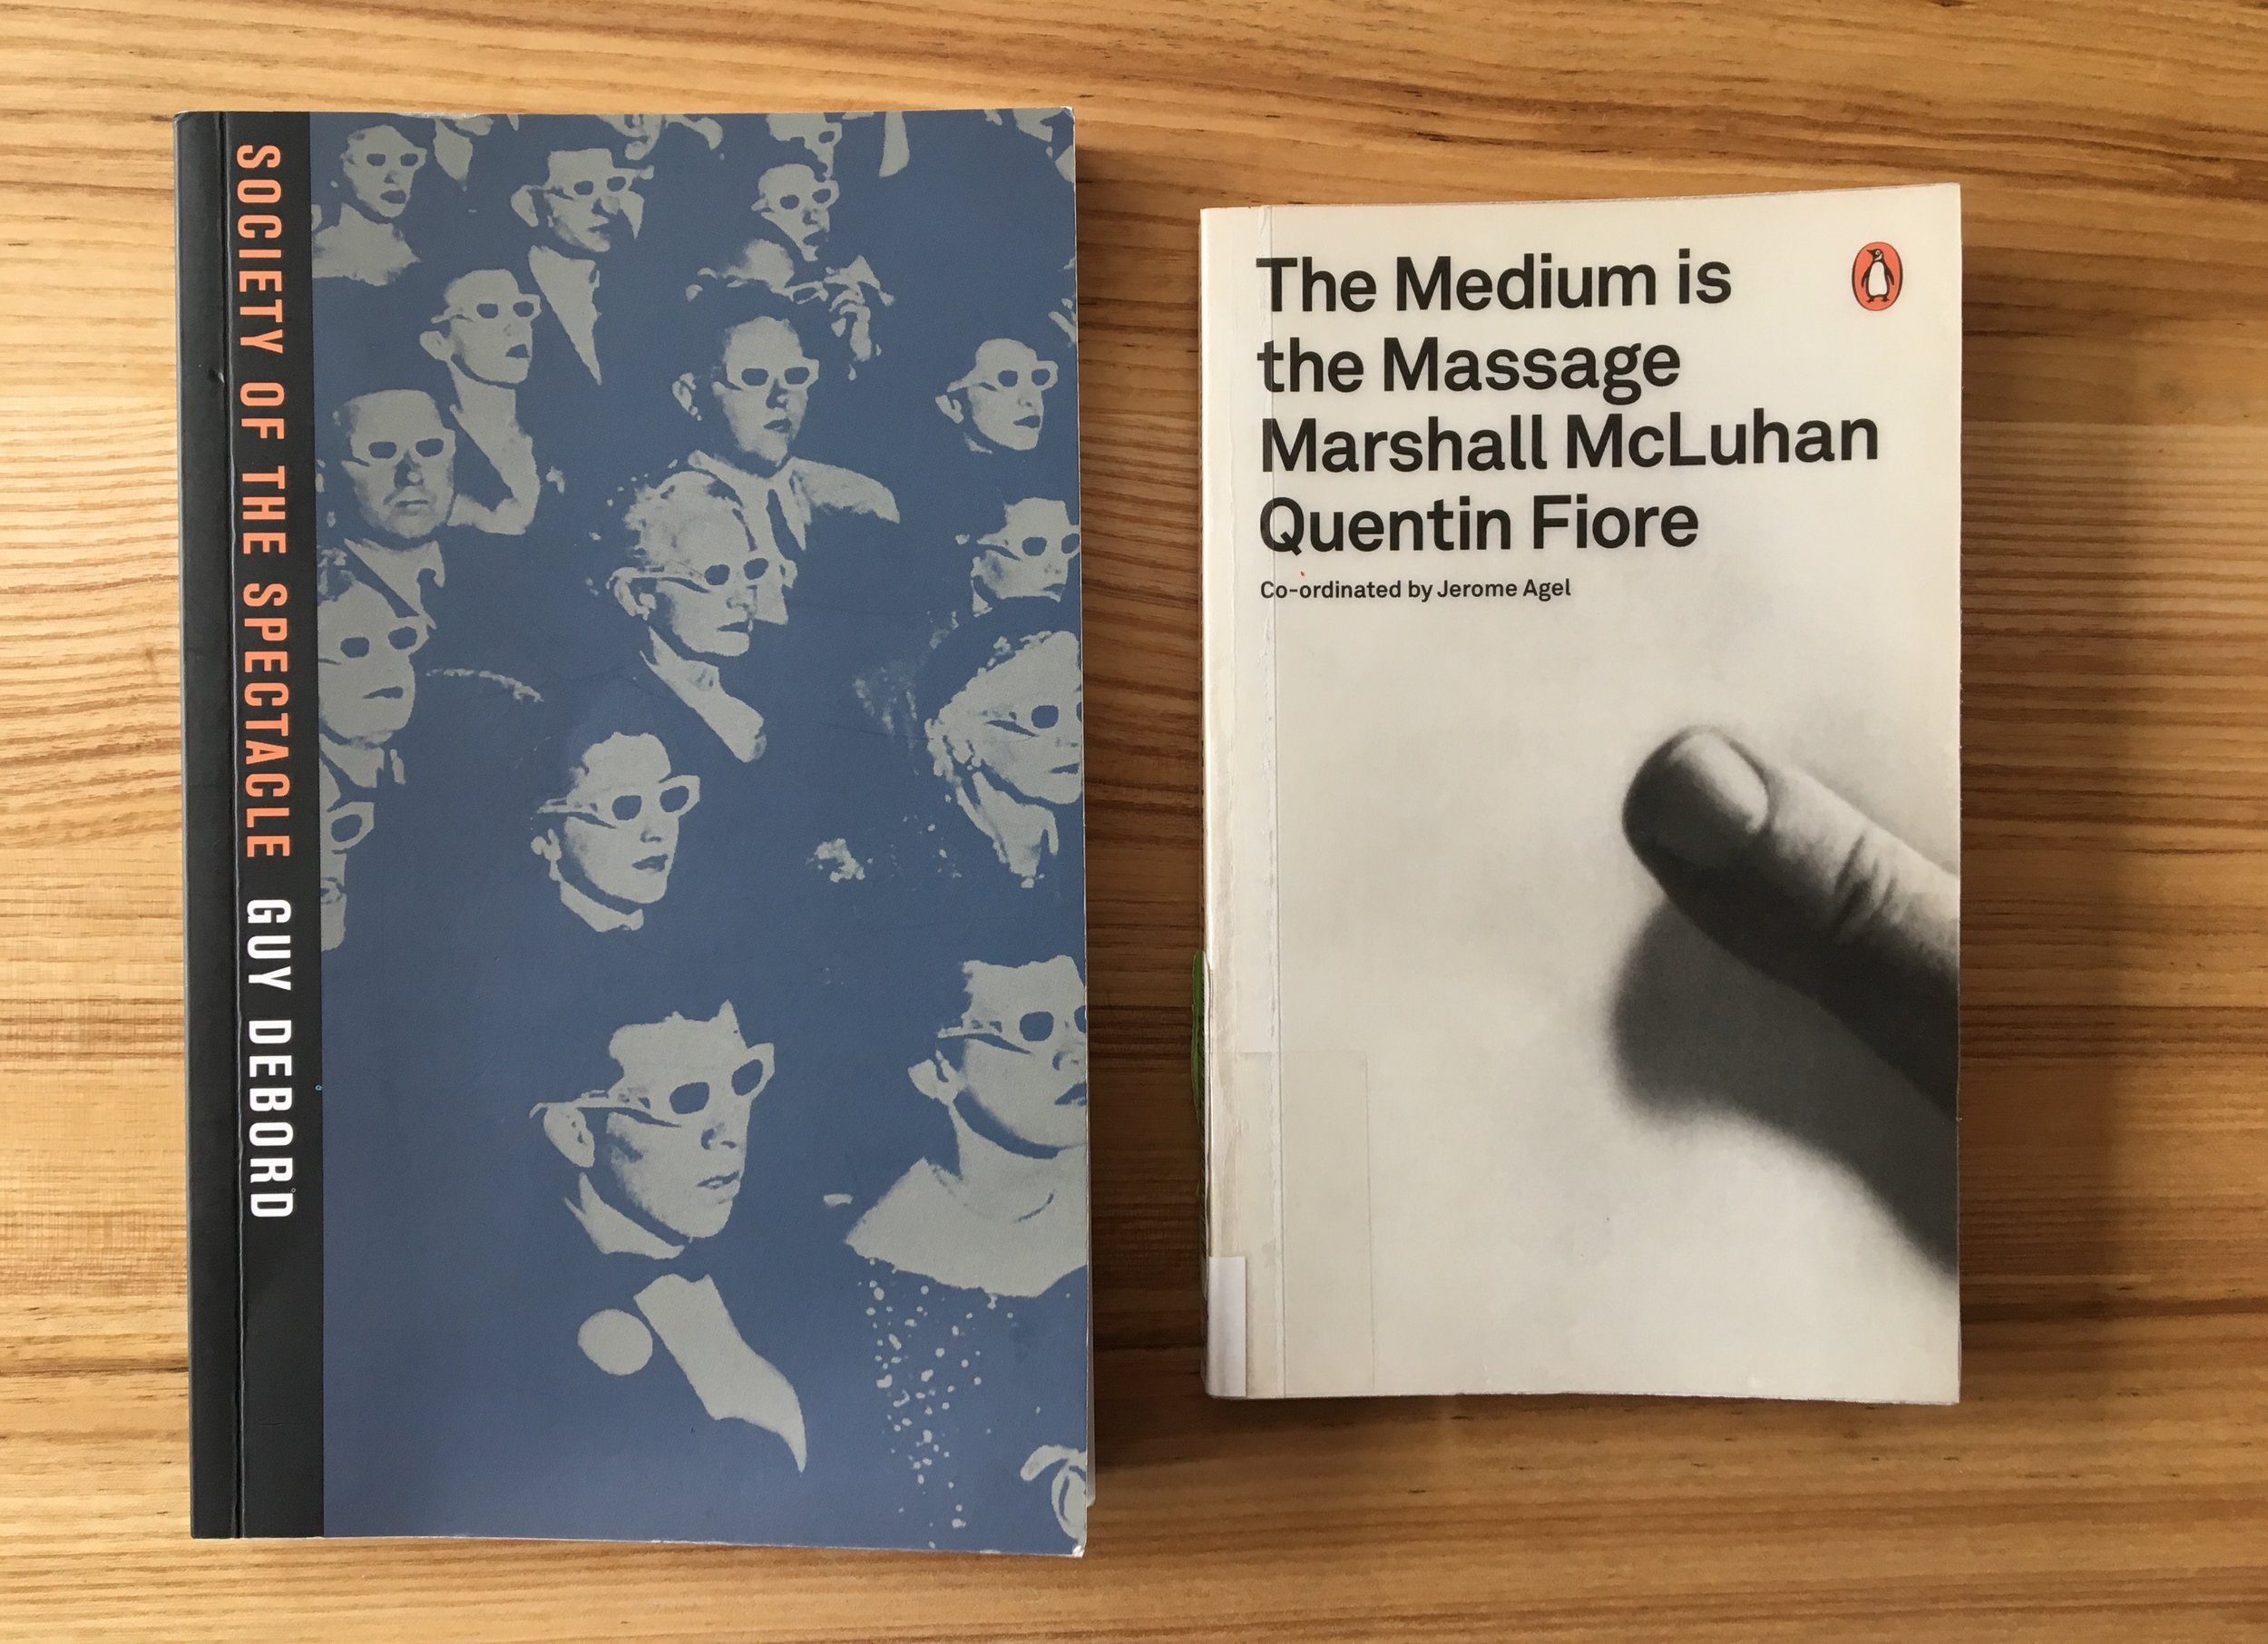 Dubord, G (1967)  Society of the Spectacle.  Rebel Press.  McLuhan, M (1967)  The Medium is the Massage.  Penguin Classics.